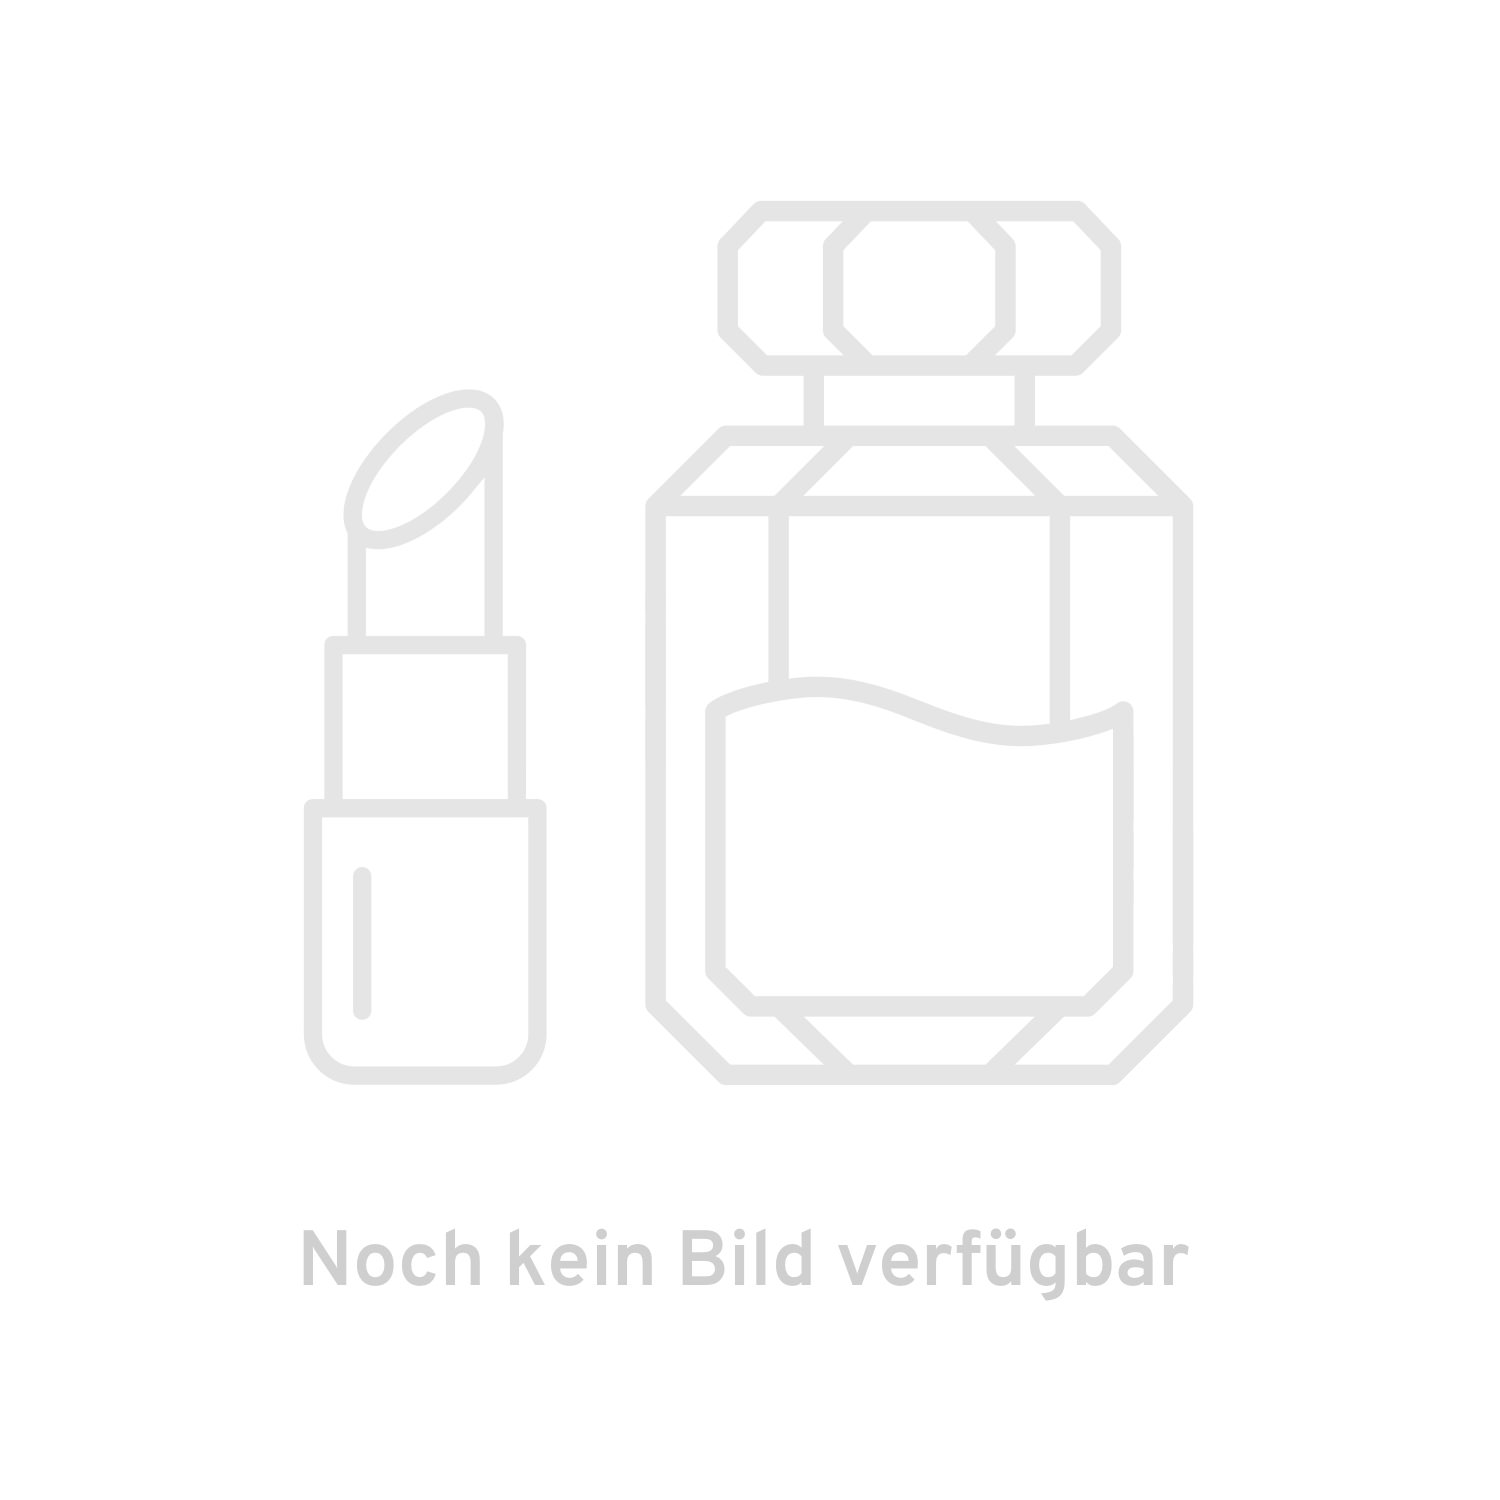 197s Duo Fibre Square Brush